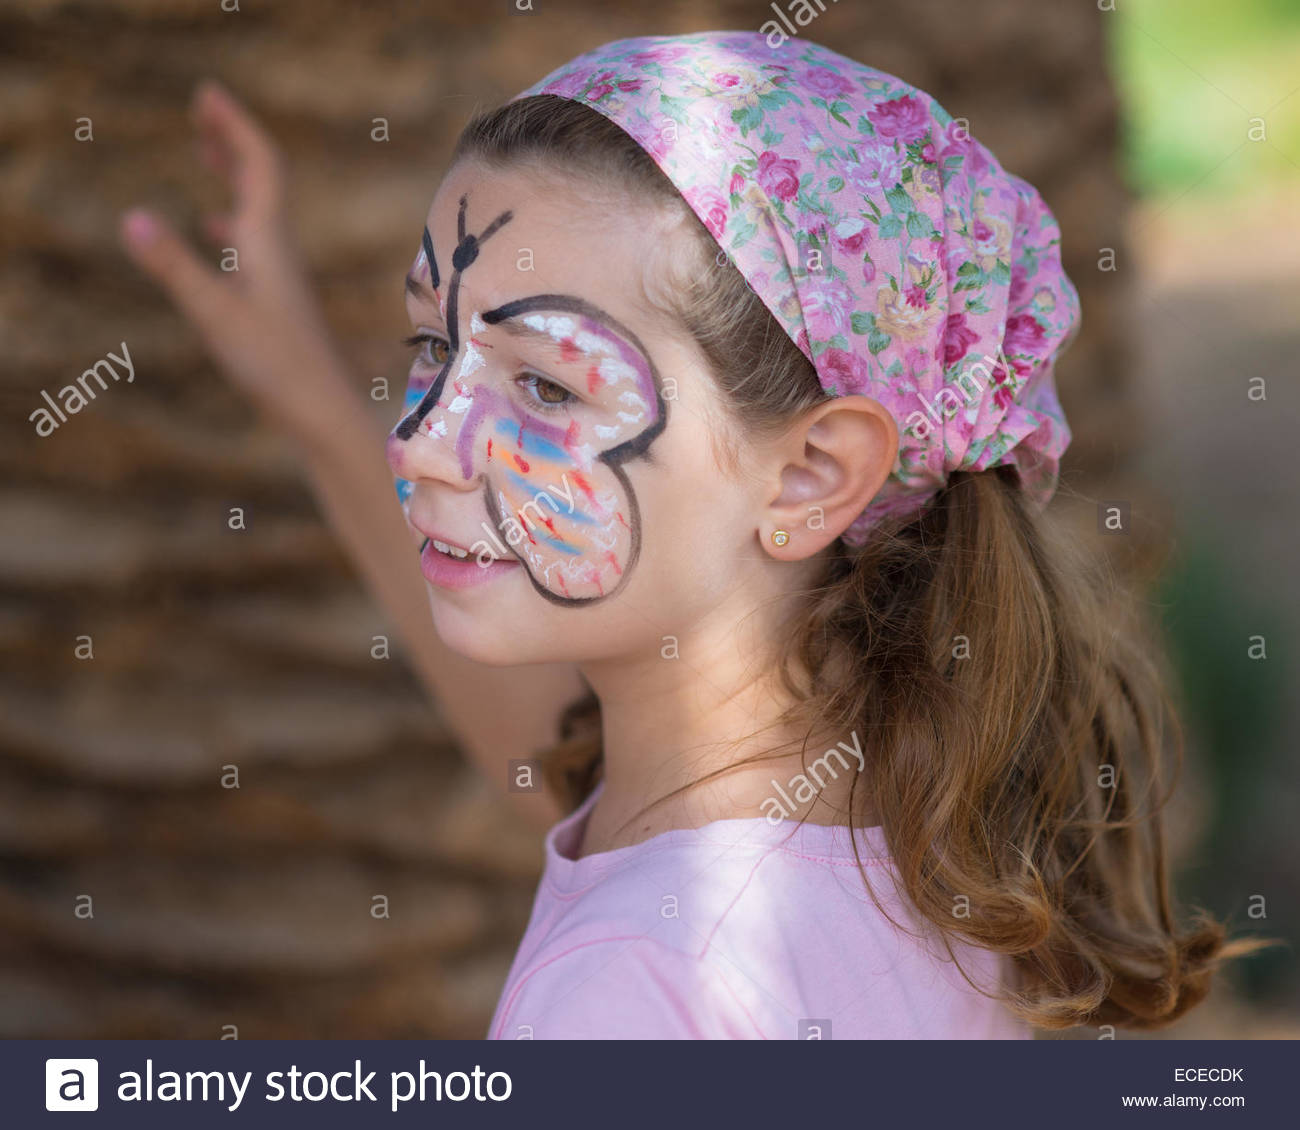 Spain, Valencia, Girl (6-7) with face painted - Stock Image